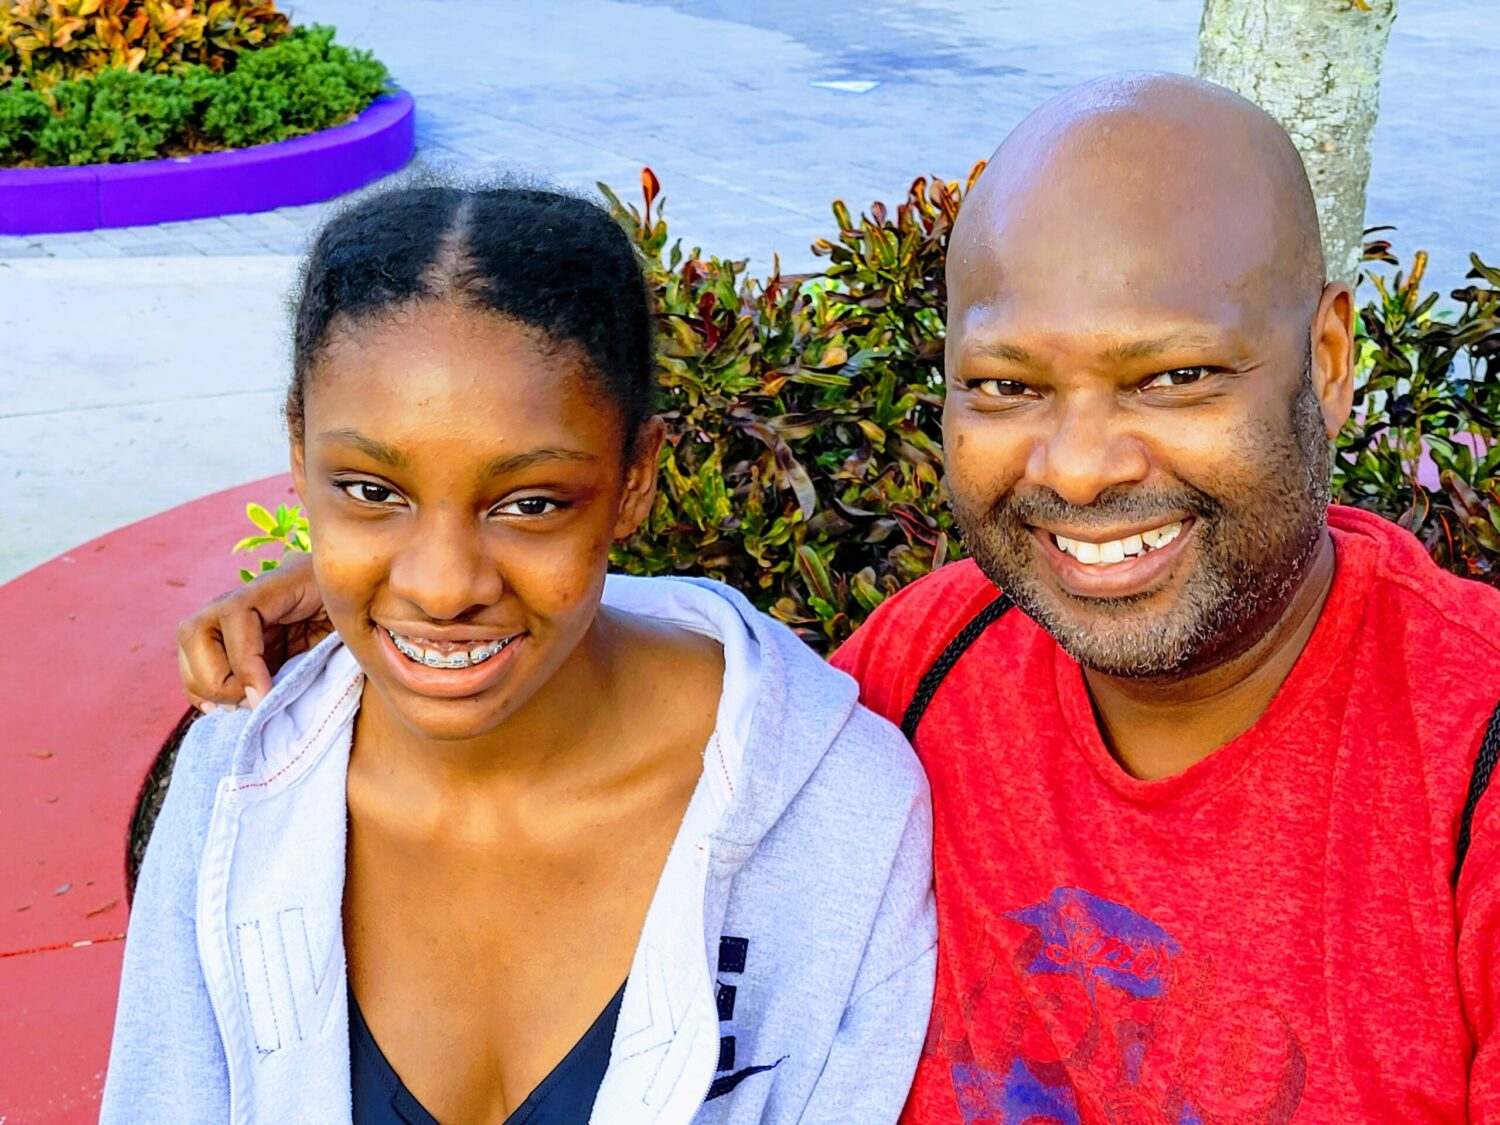 Teen daughter with dad at LEGOLAND Florida, a fun place to visit with teens and tweens